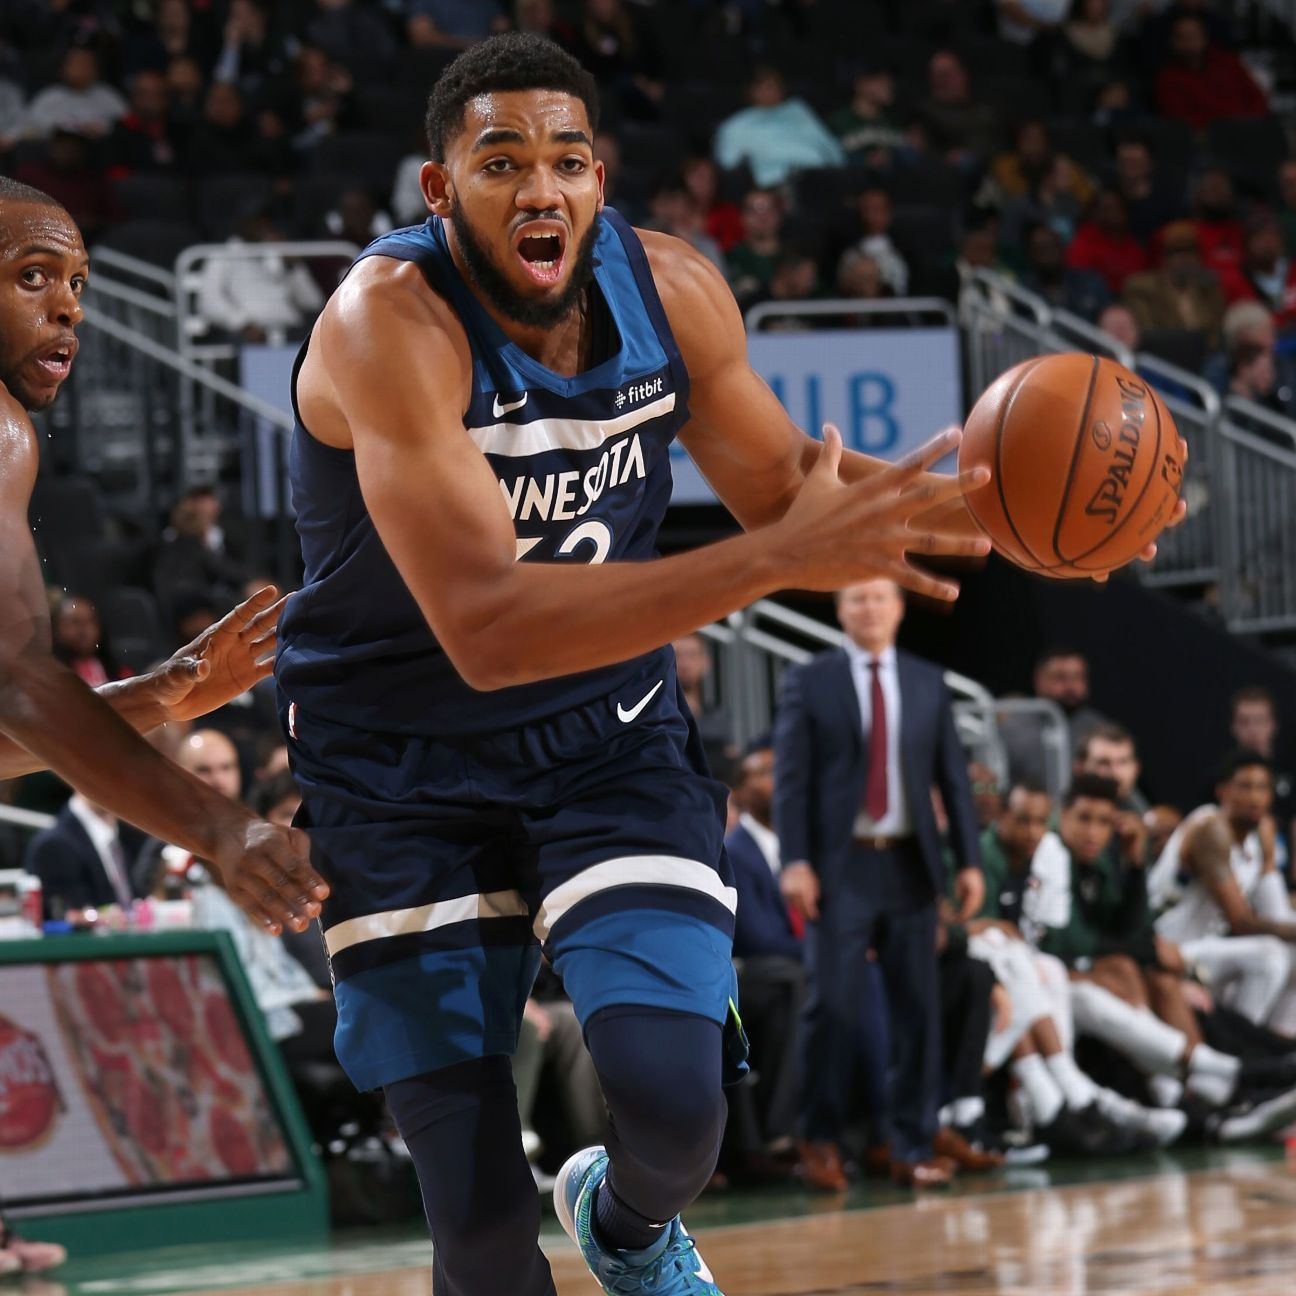 Wolves expect Butler to play in season opener